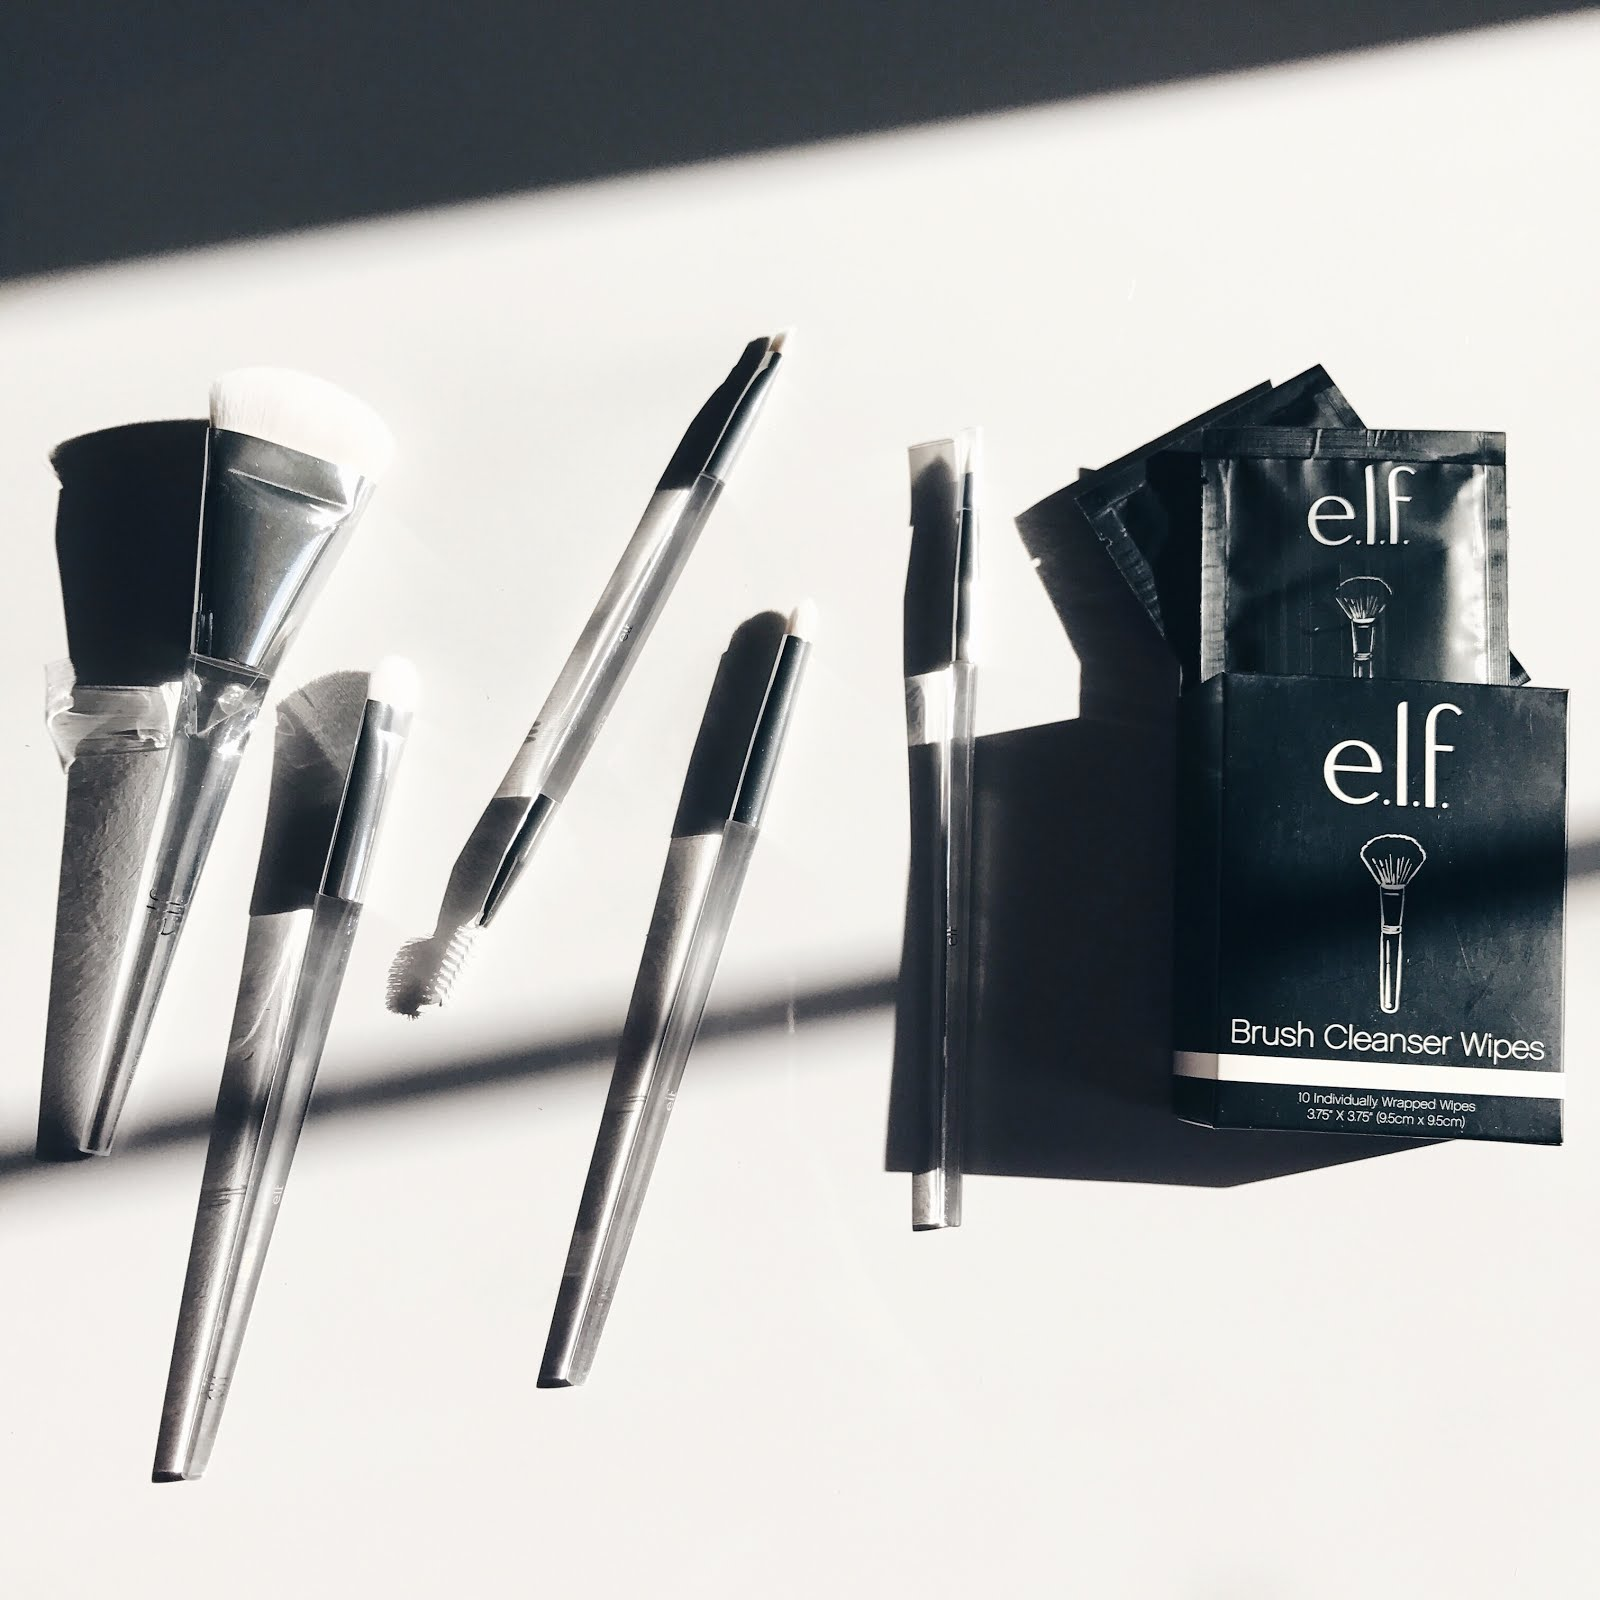 elf-Cosmetics-Beautifully-Precise-Brushes-Vivi-Brizuela-PinkOrchidMakeup